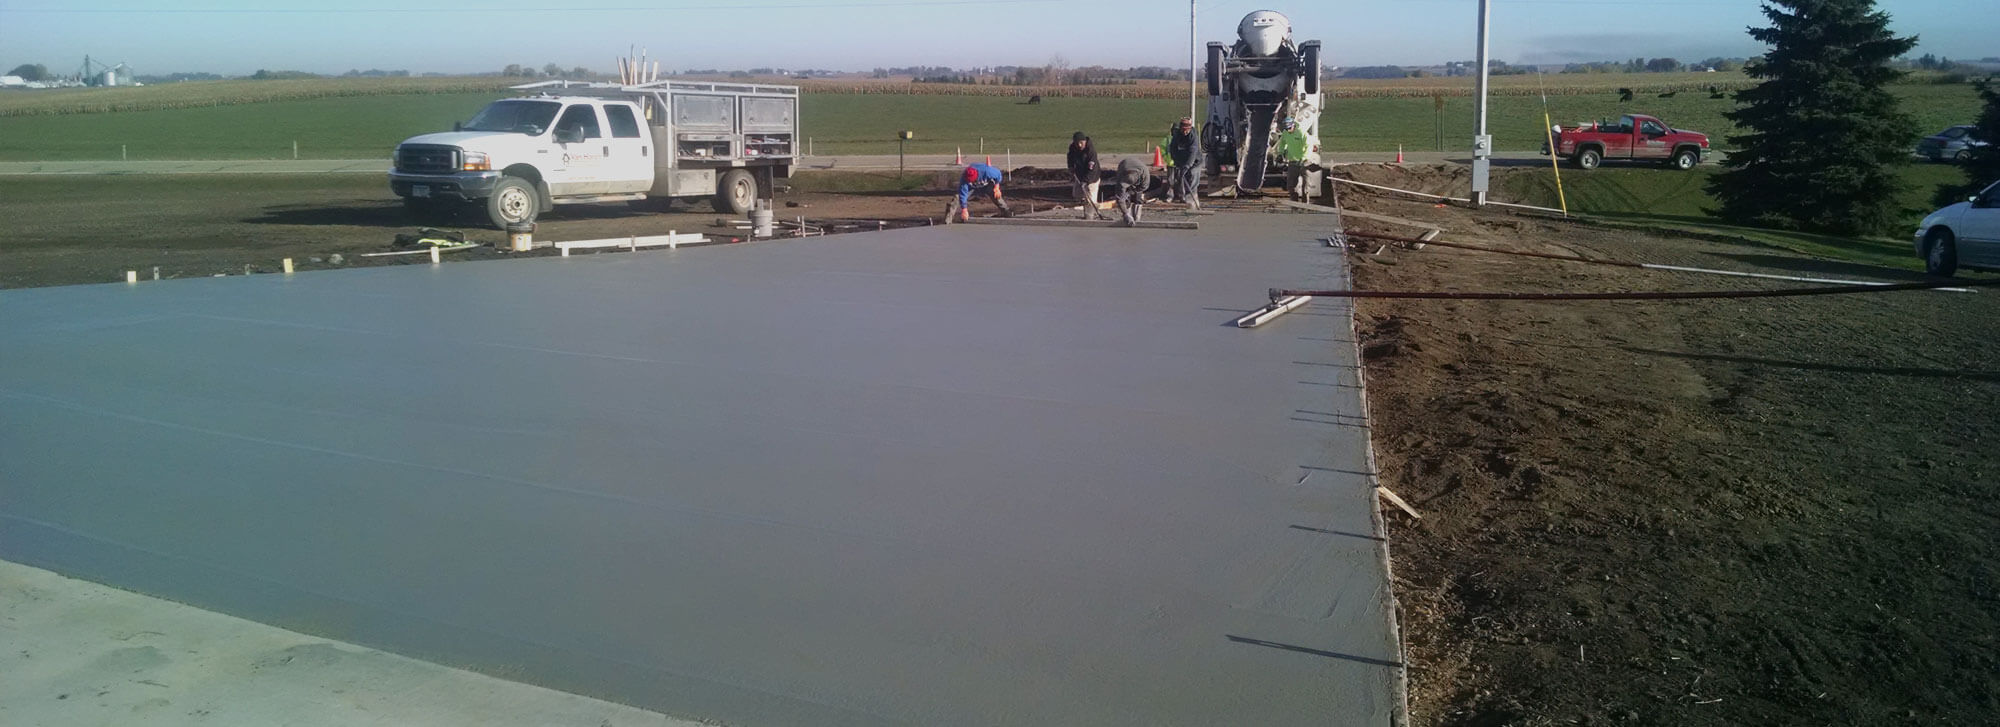 Residential concrete driveway in the process of being poured and smoothed by Van Haren Construction